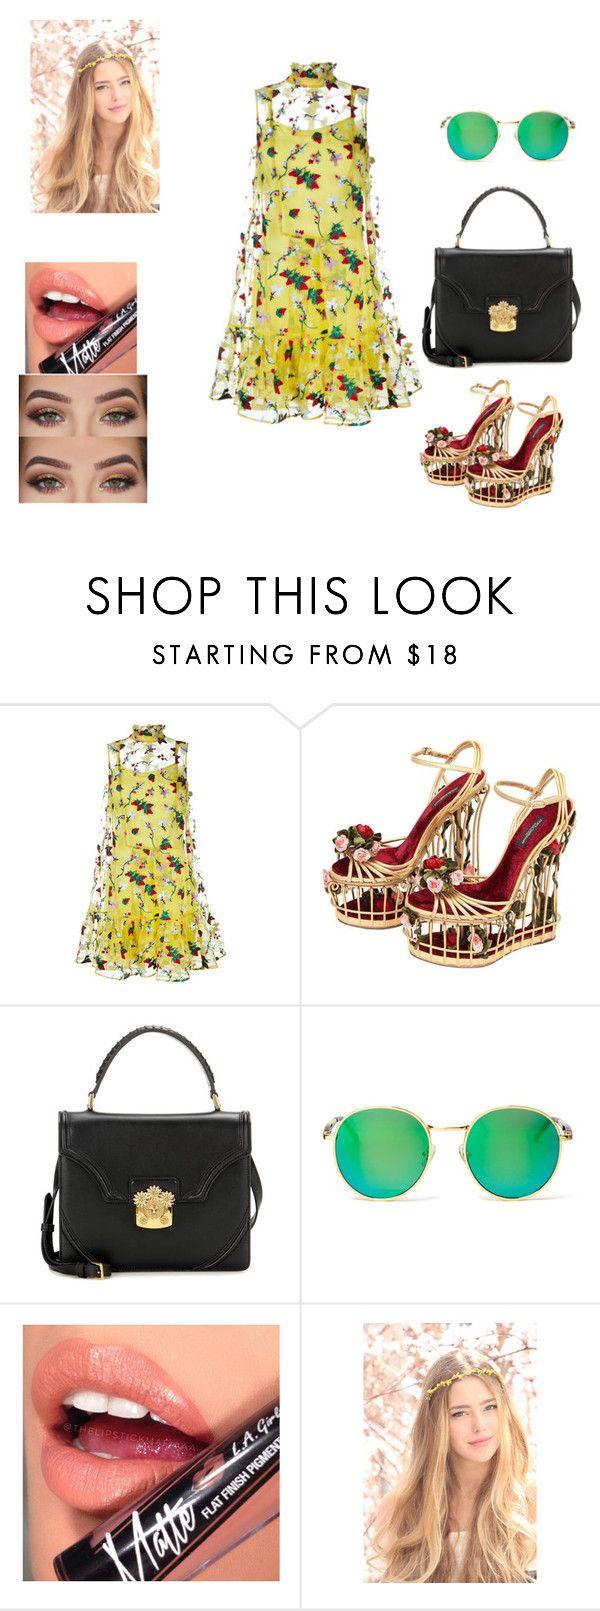 """""""flower"""" by tinhinane ❤ liked on Polyvore featuring Erdem, Dolce&Gabbana, Alexander McQueen, Wildfox, Anastasia Beverly Hills and Fiebiger"""